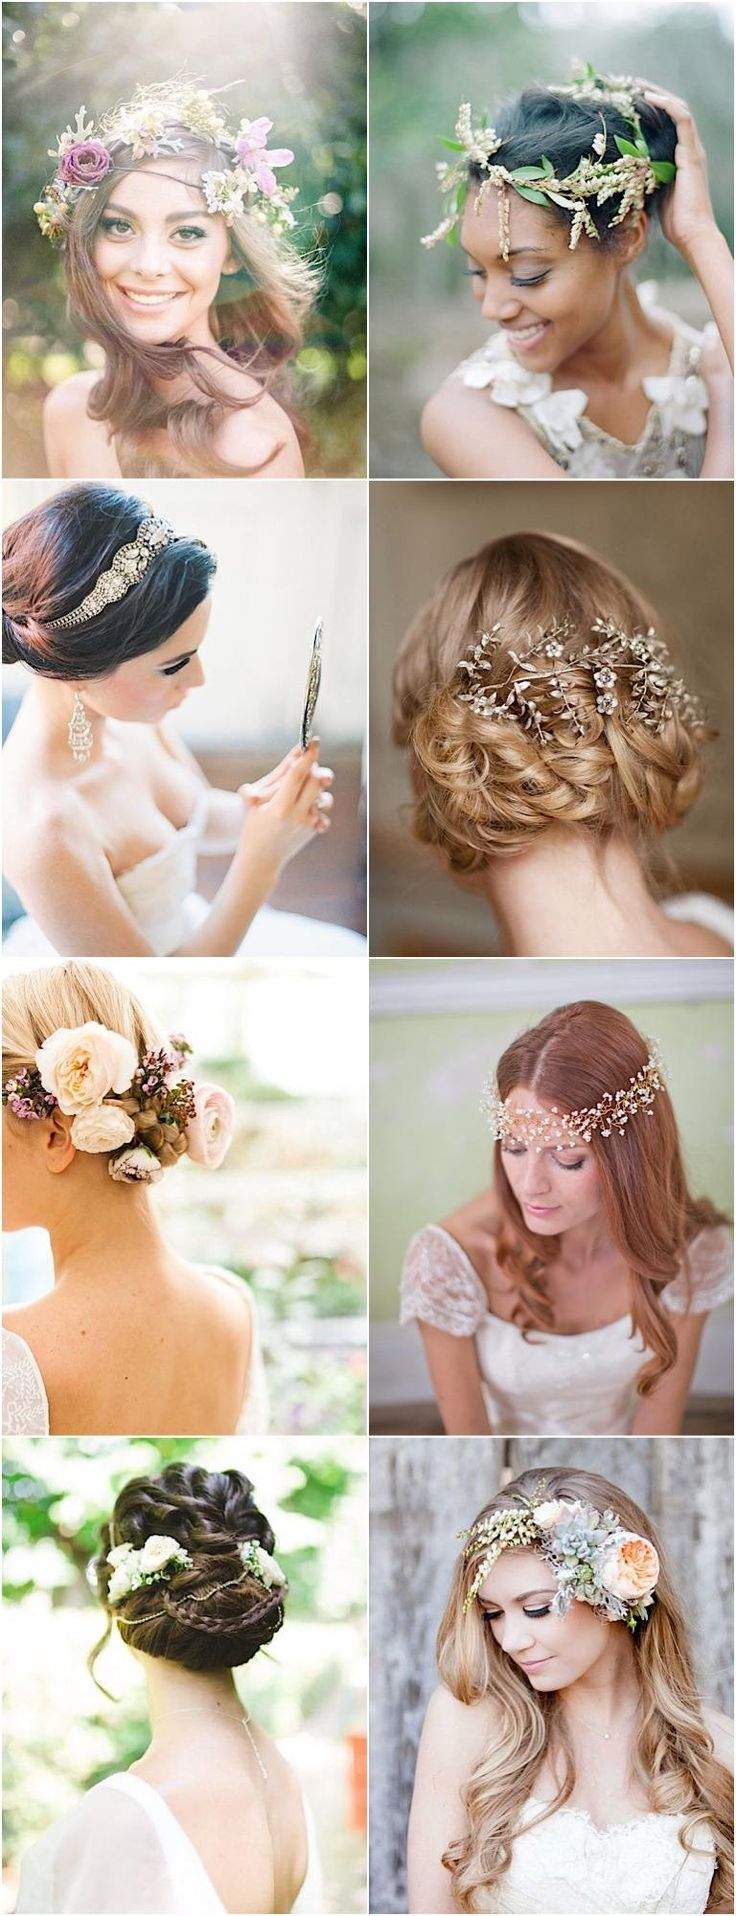 196 best wedding hair images on pinterest   hairstyles, marriage